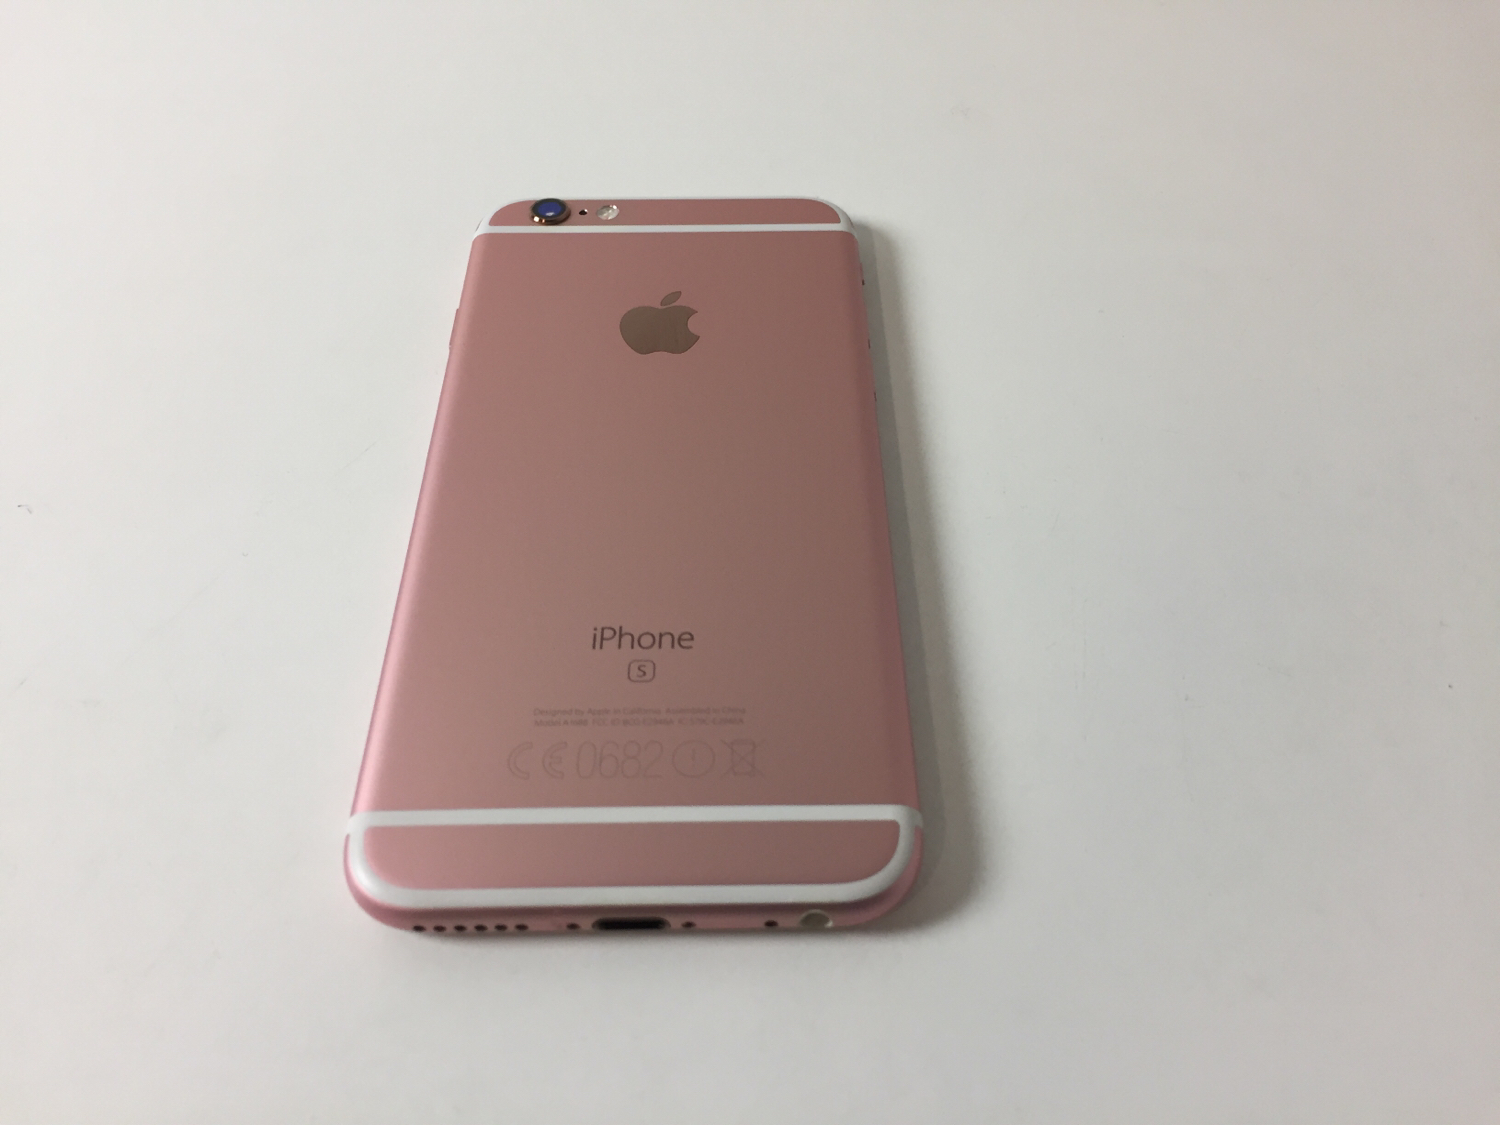 iPhone 6S 64GB, 64GB, Rose Gold, obraz 2